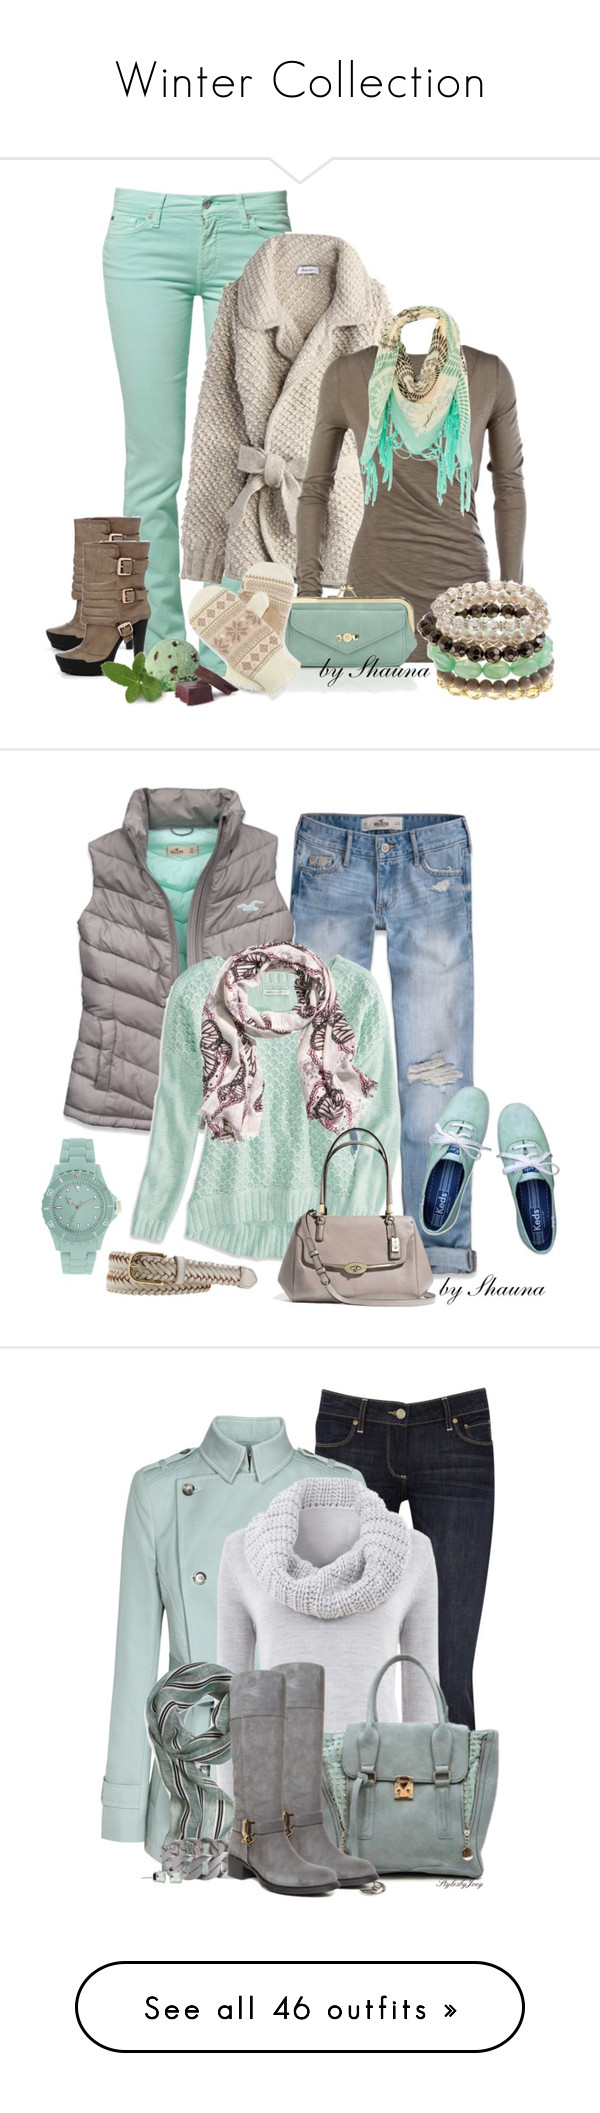 """""""Winter Collection"""" by arjozwik1989 on Polyvore featuring 7 For All Mankind, Desigual, New Look, Jean-Michel Cazabat, Accessorize, Isotoner, Hollister Co., American Eagle Outfitters, H&M and Coach"""